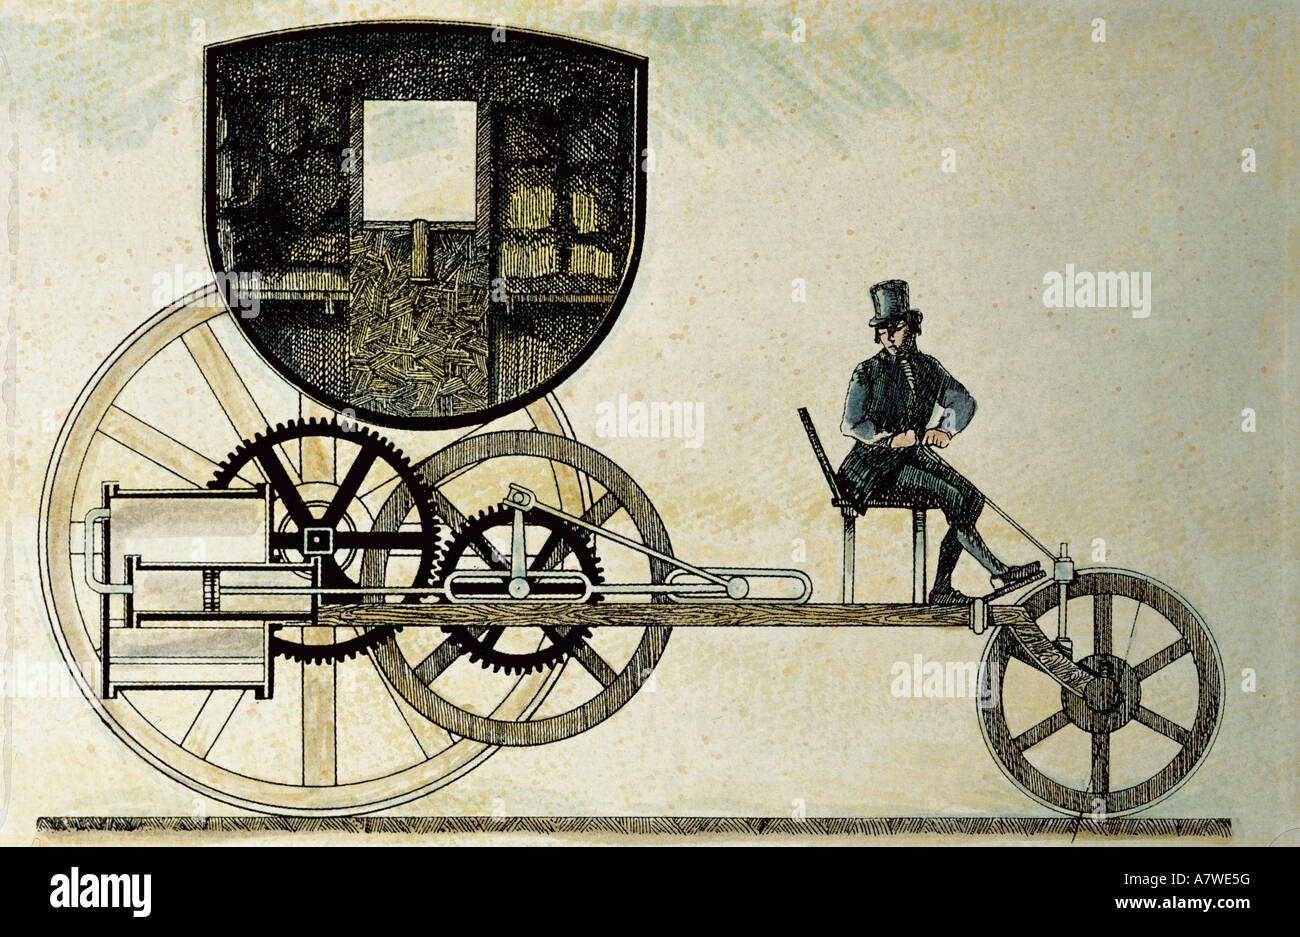 Transport Transportation Steam Engine Coach By Richard Stock Bike Diagram Trevithick 1801 Coloured Engraving Great Britain 1802 Private Collection